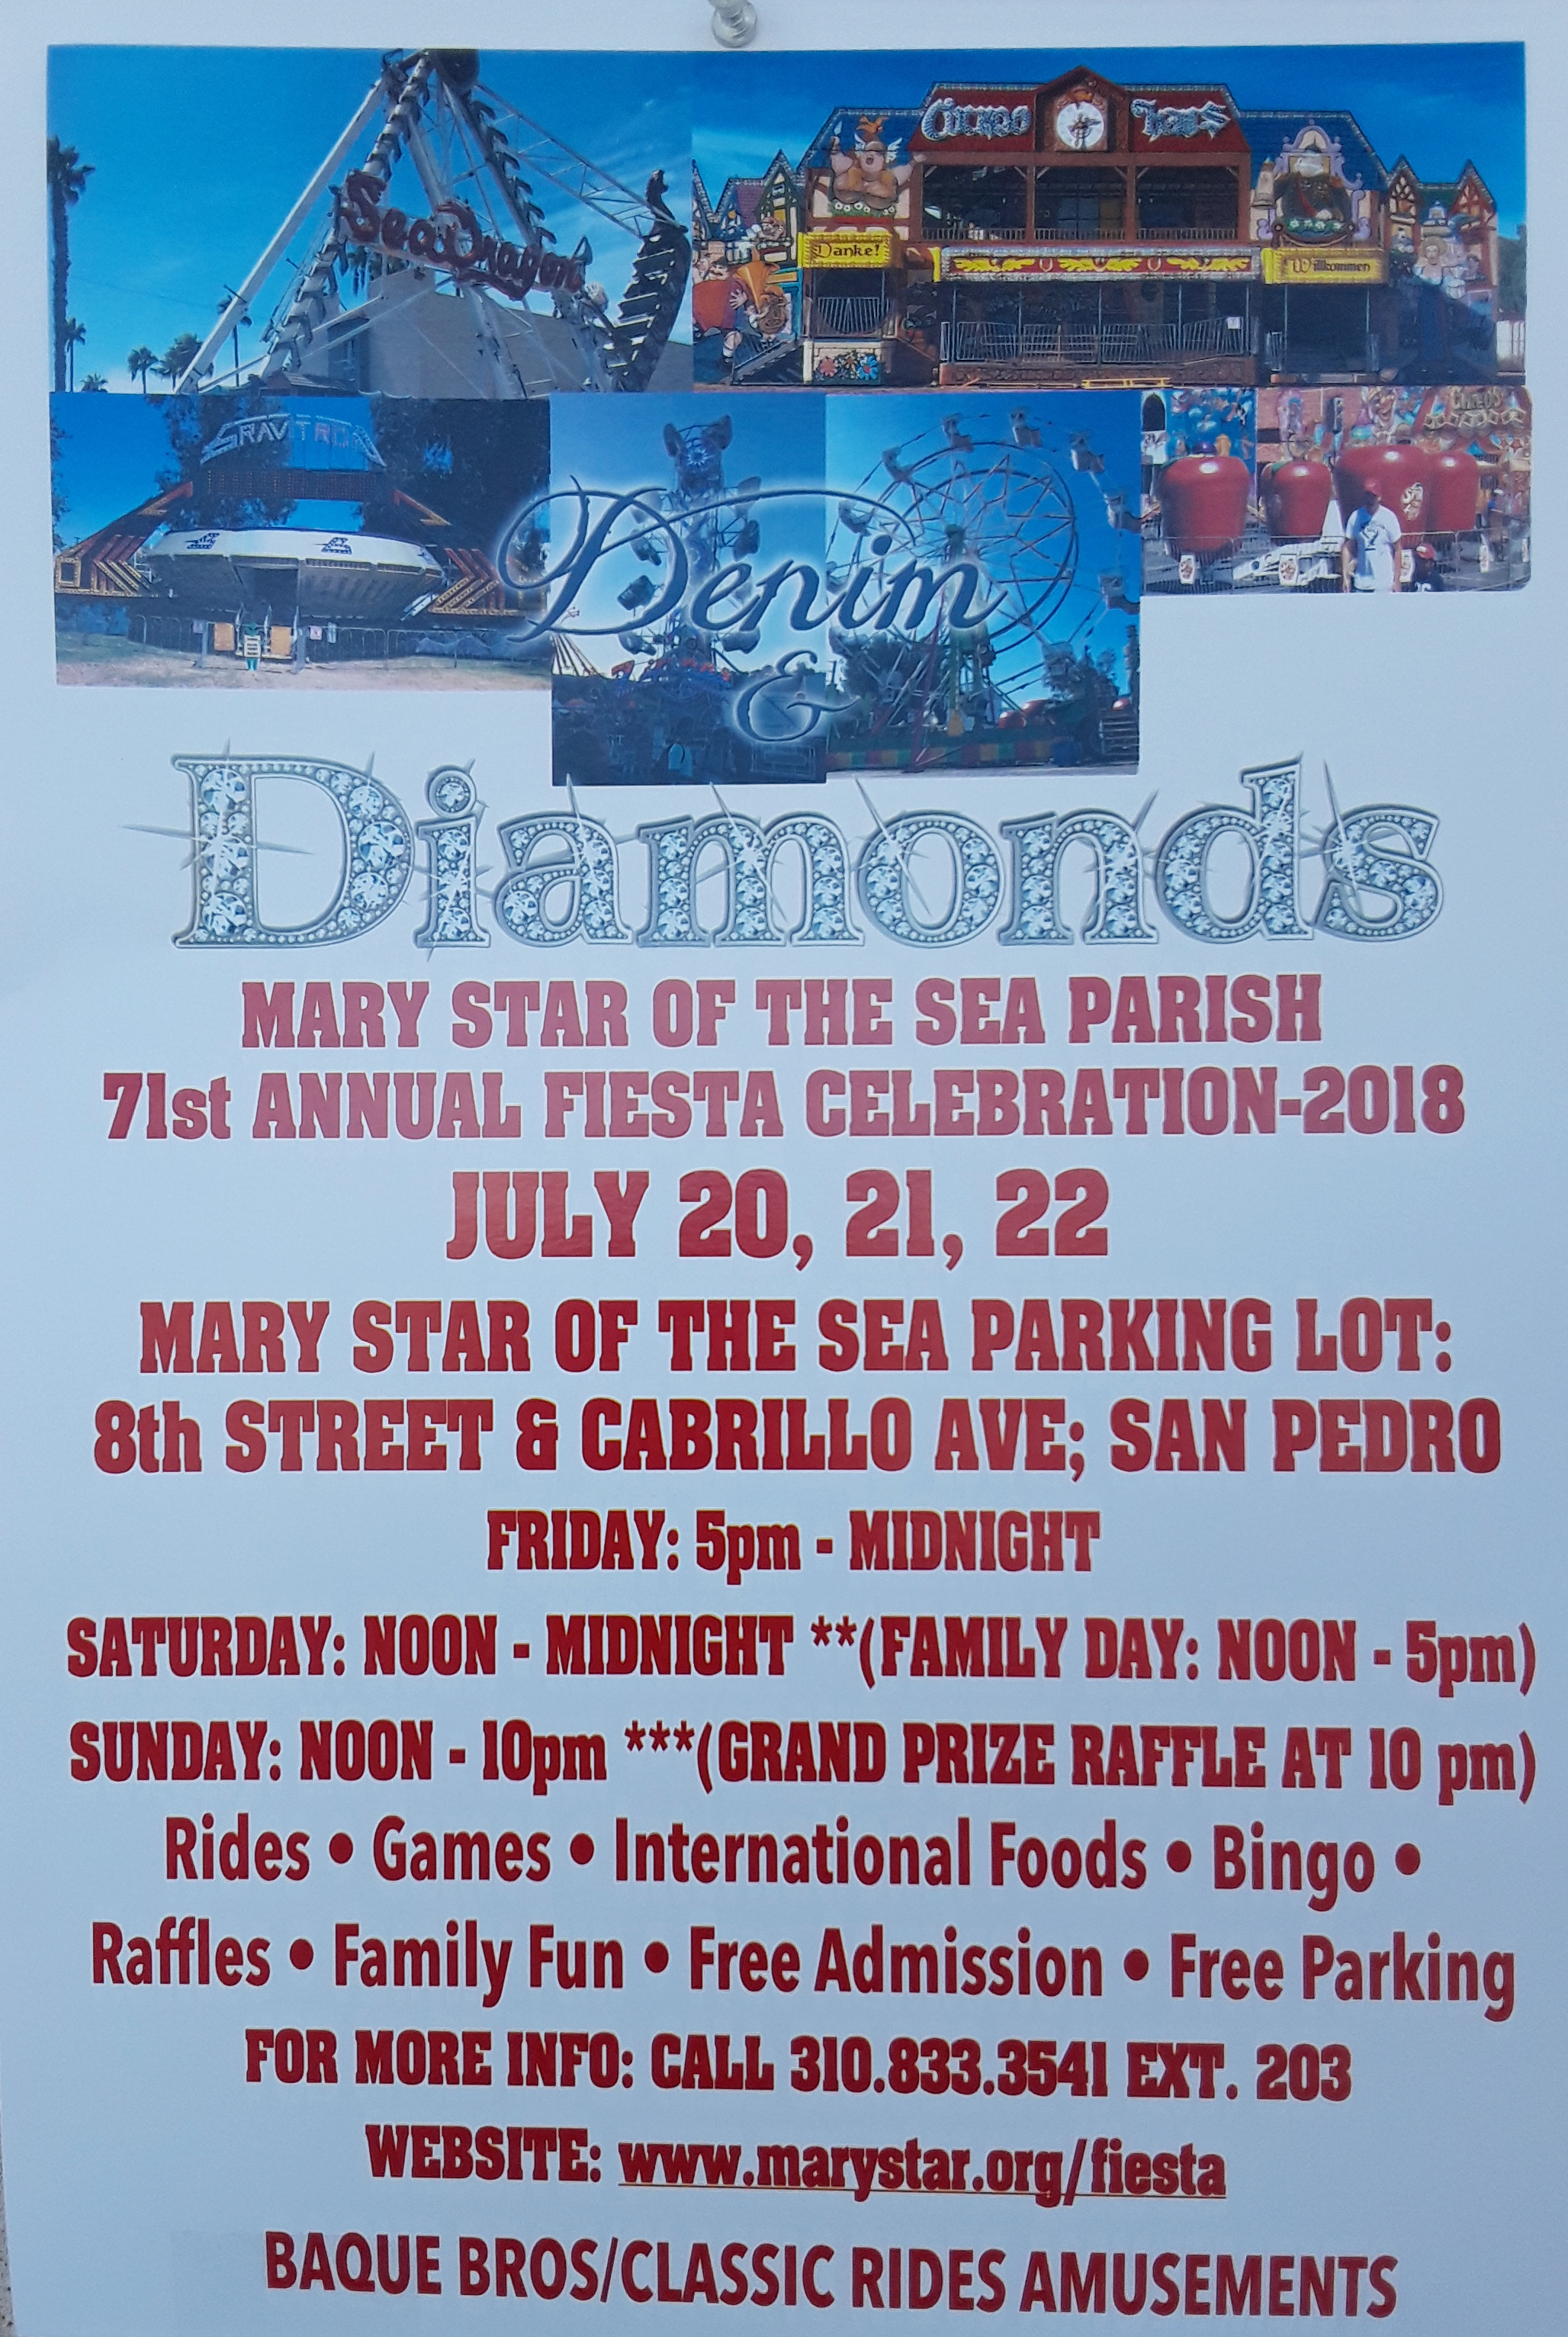 Mary Star Fiesta 2018